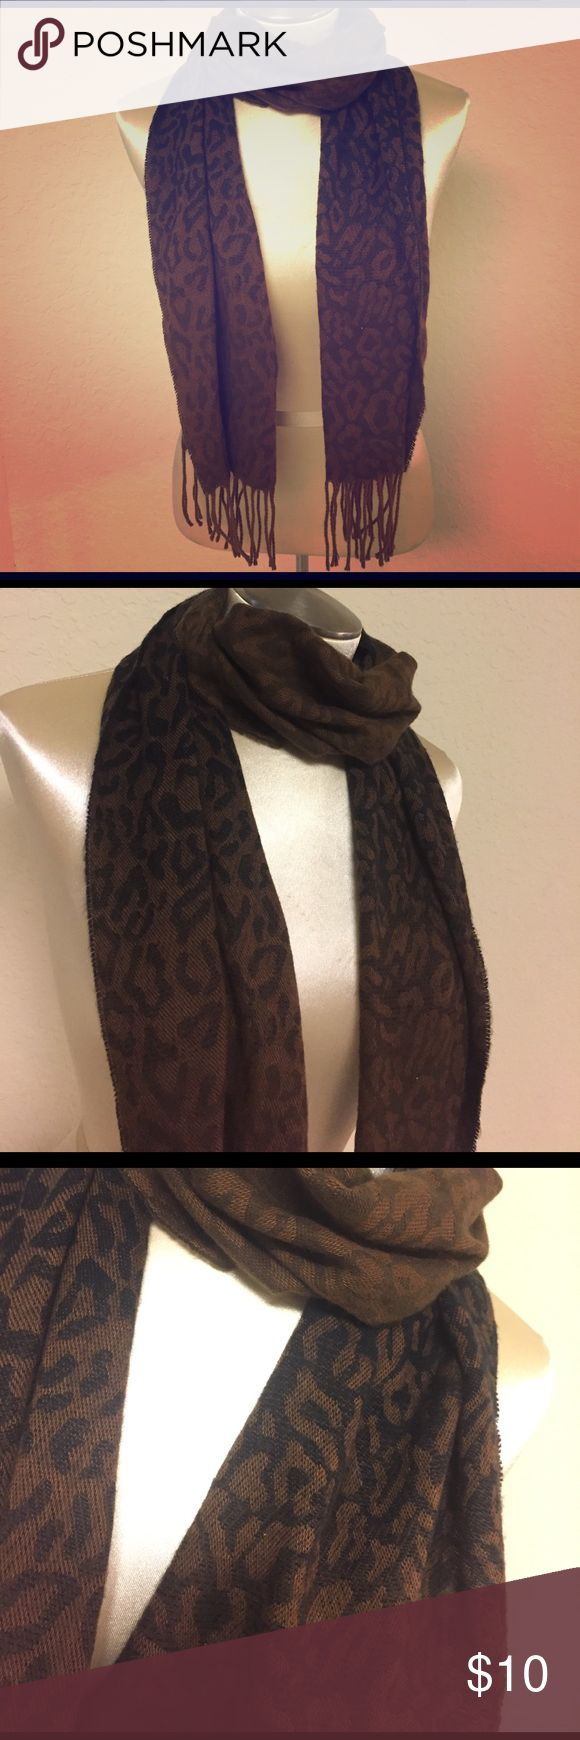 Selling this Brown Ombré Leopard Print Scarf with Tassels on Poshmark! My username is: hannahleigh870. #shopmycloset #poshmark #fashion #shopping #style #forsale #Accessories